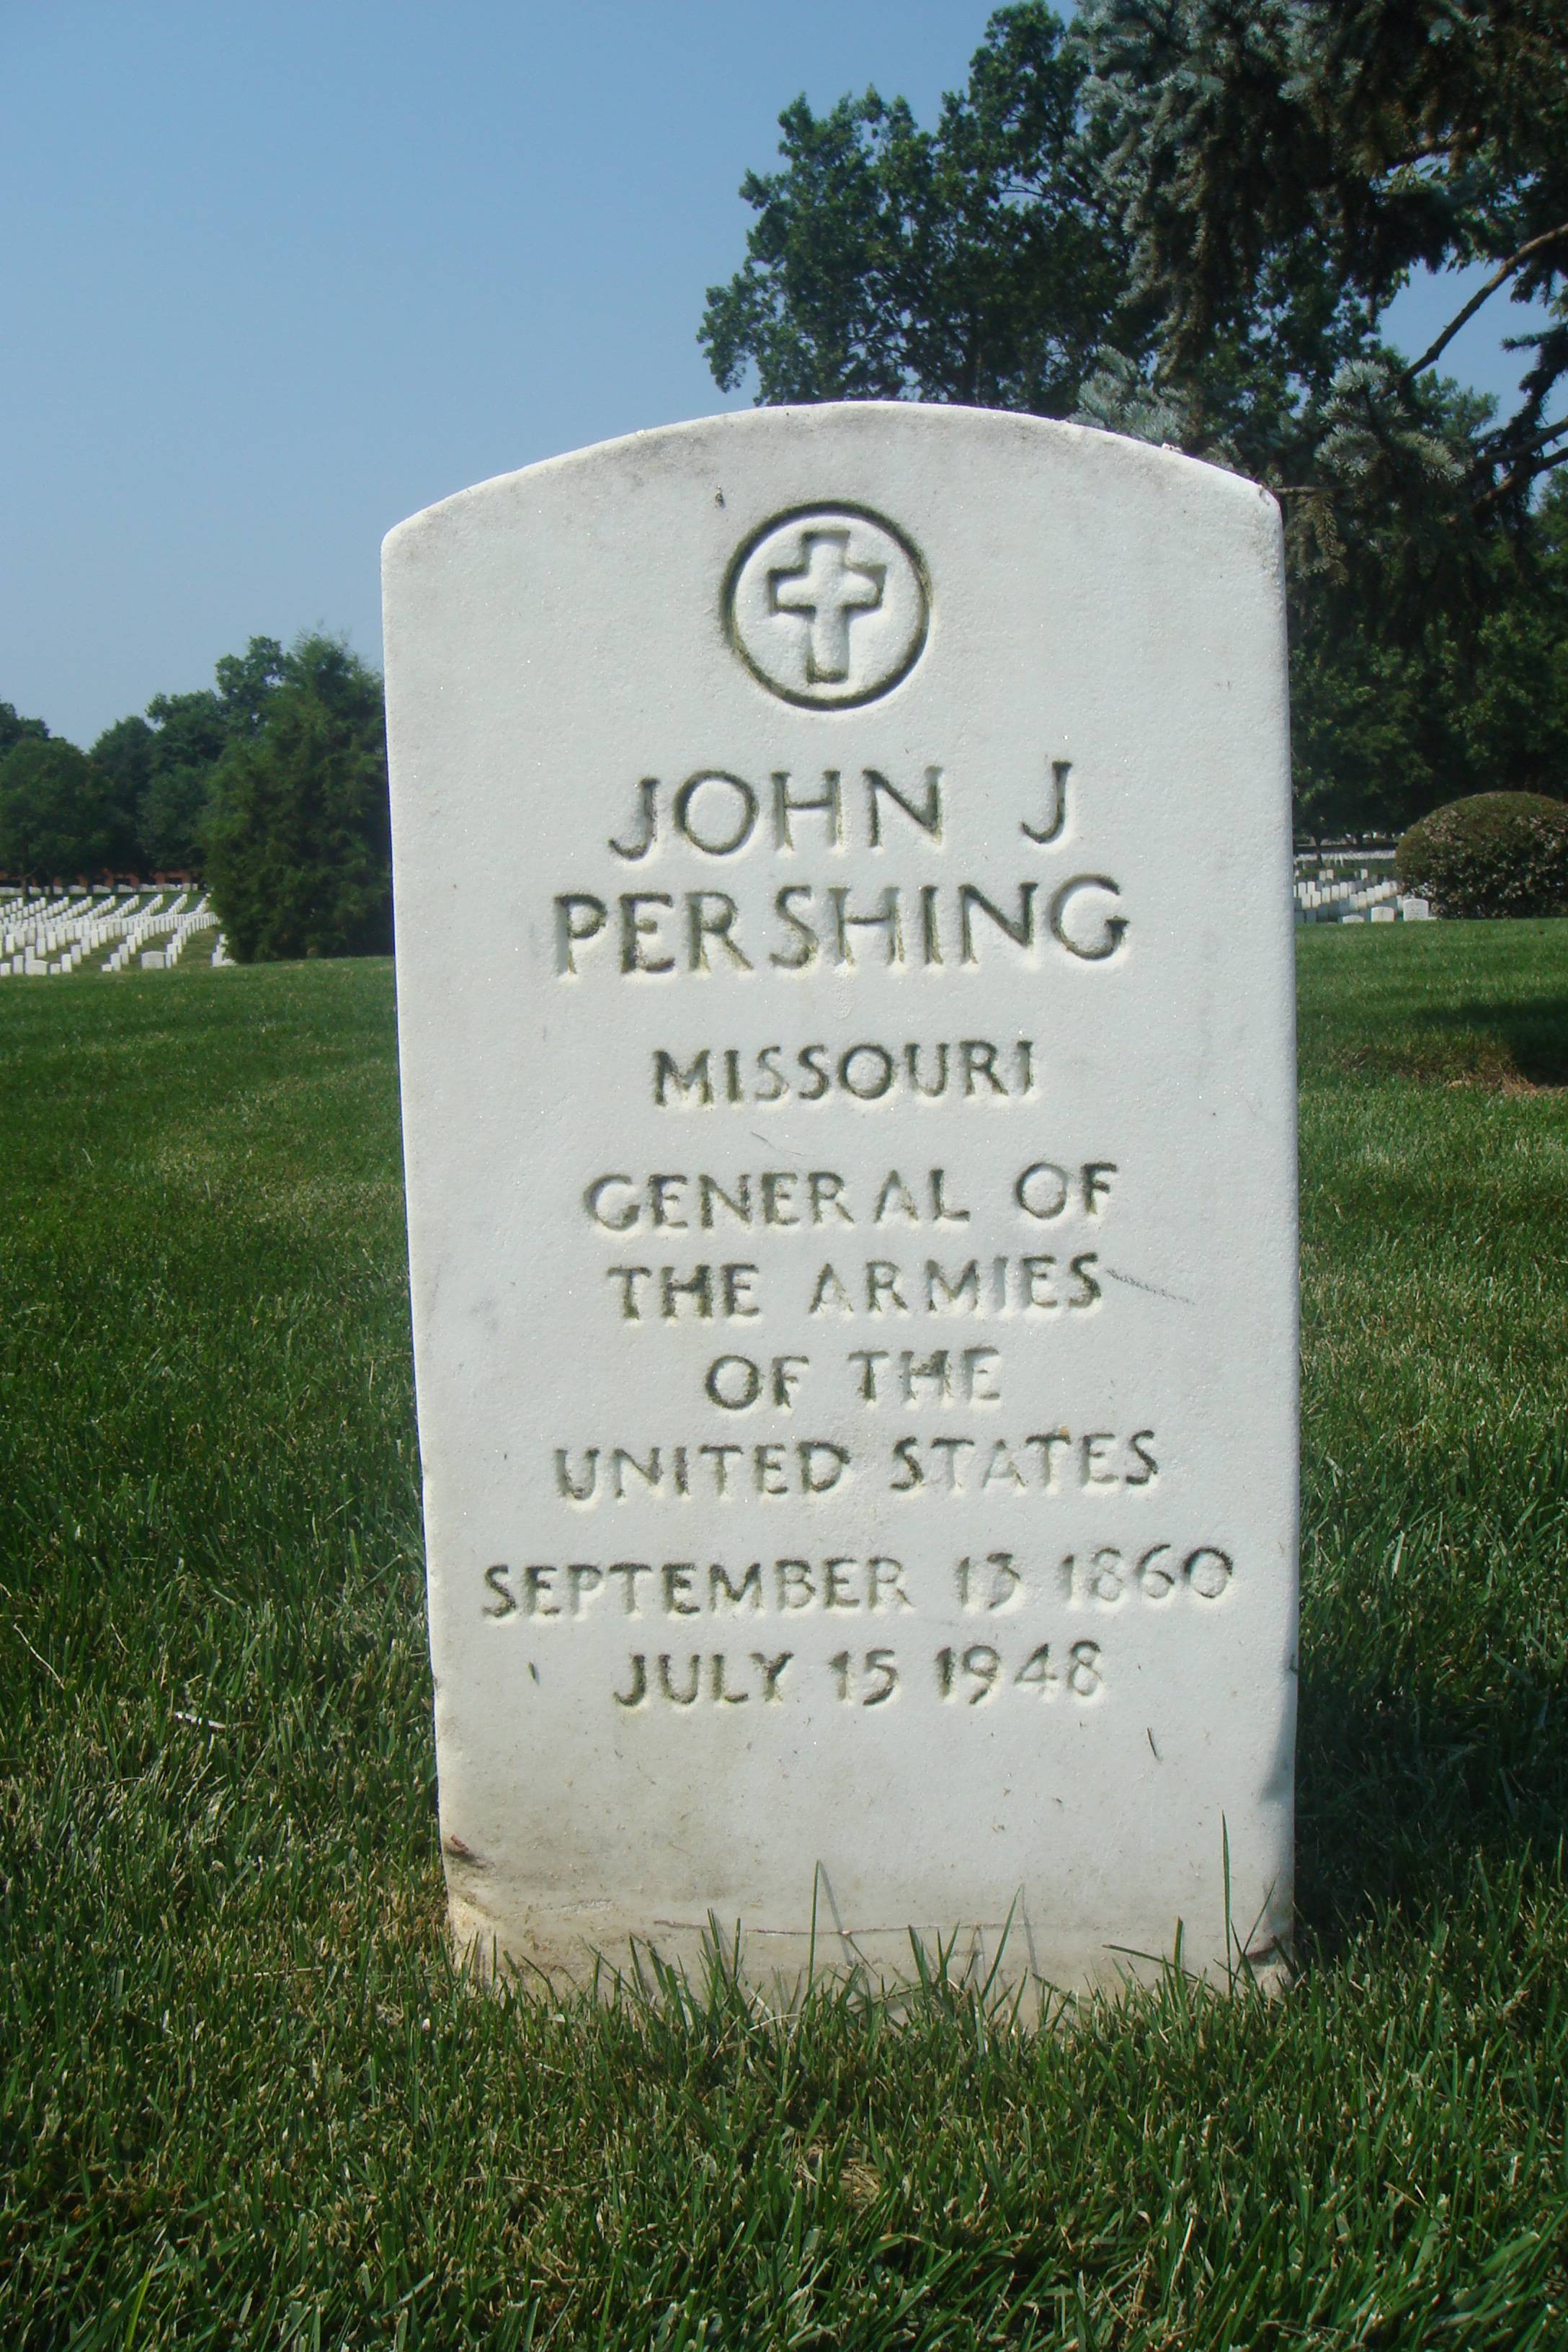 The gravestone of General John J. Pershing in Arlington National Cemetery. Throughout the cemetary, the headstones are uniform. Pershing is buried in a clearing at the top of a rise, with his son nearby, and men he led on the slopes around him.